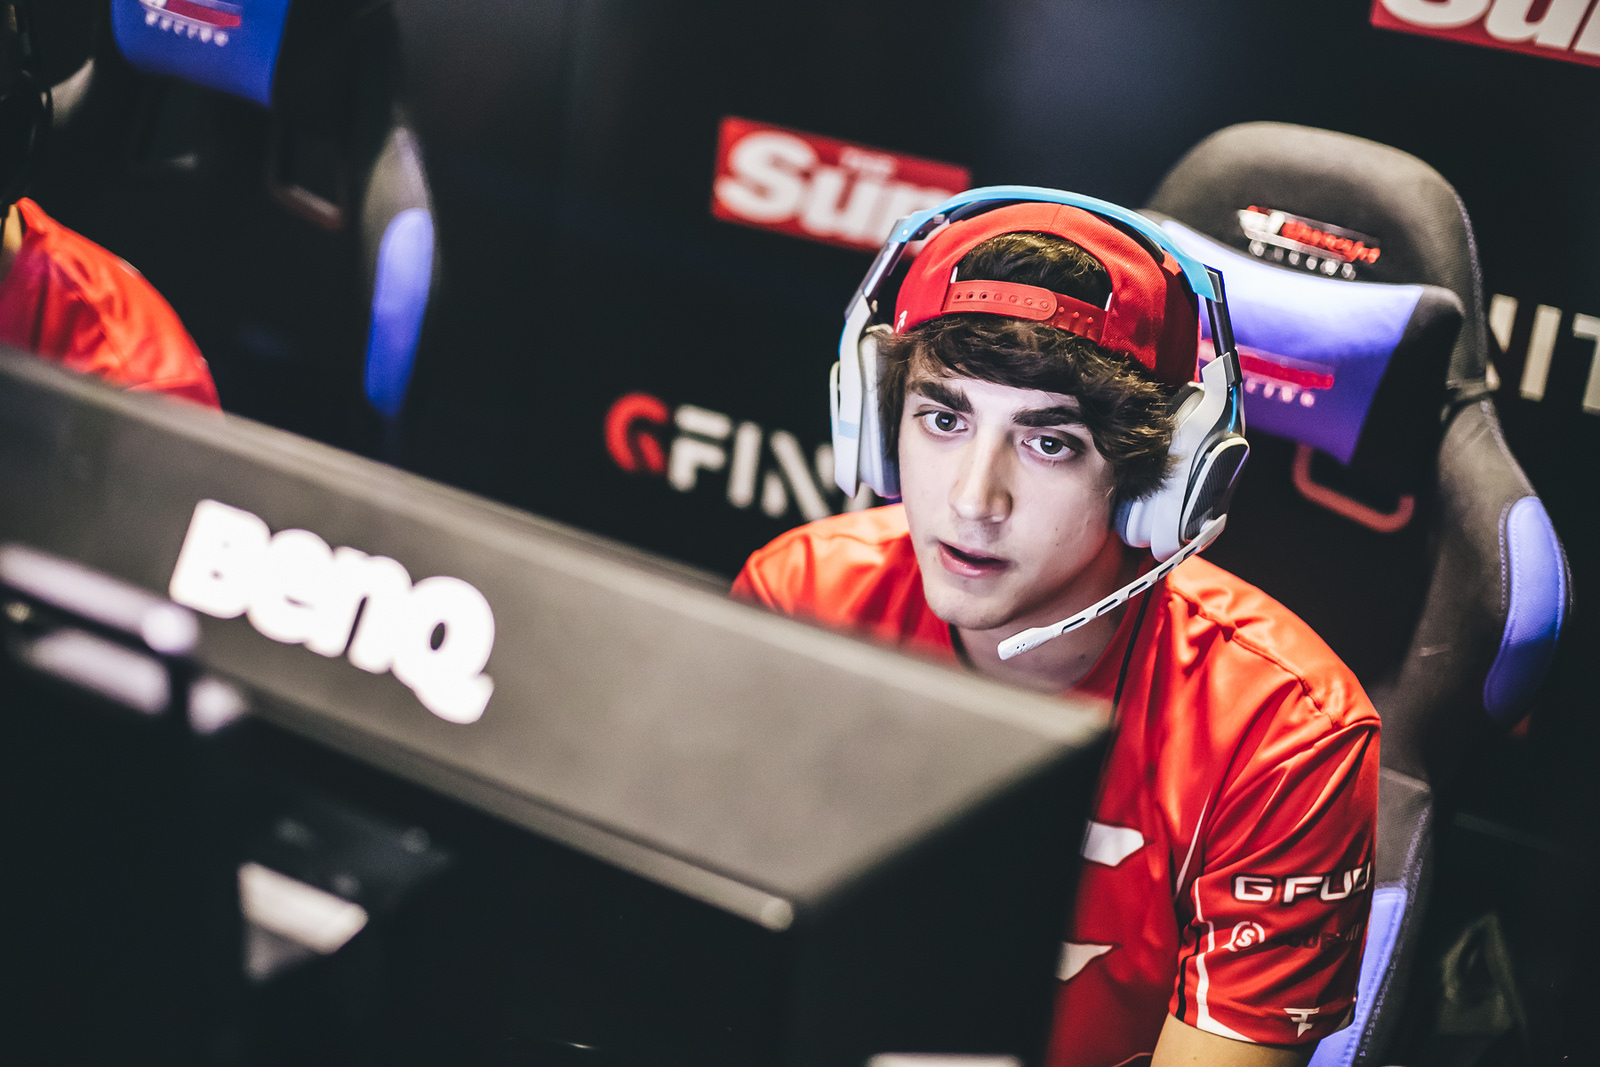 Clayster at the Gfinity 100k Summer Masters